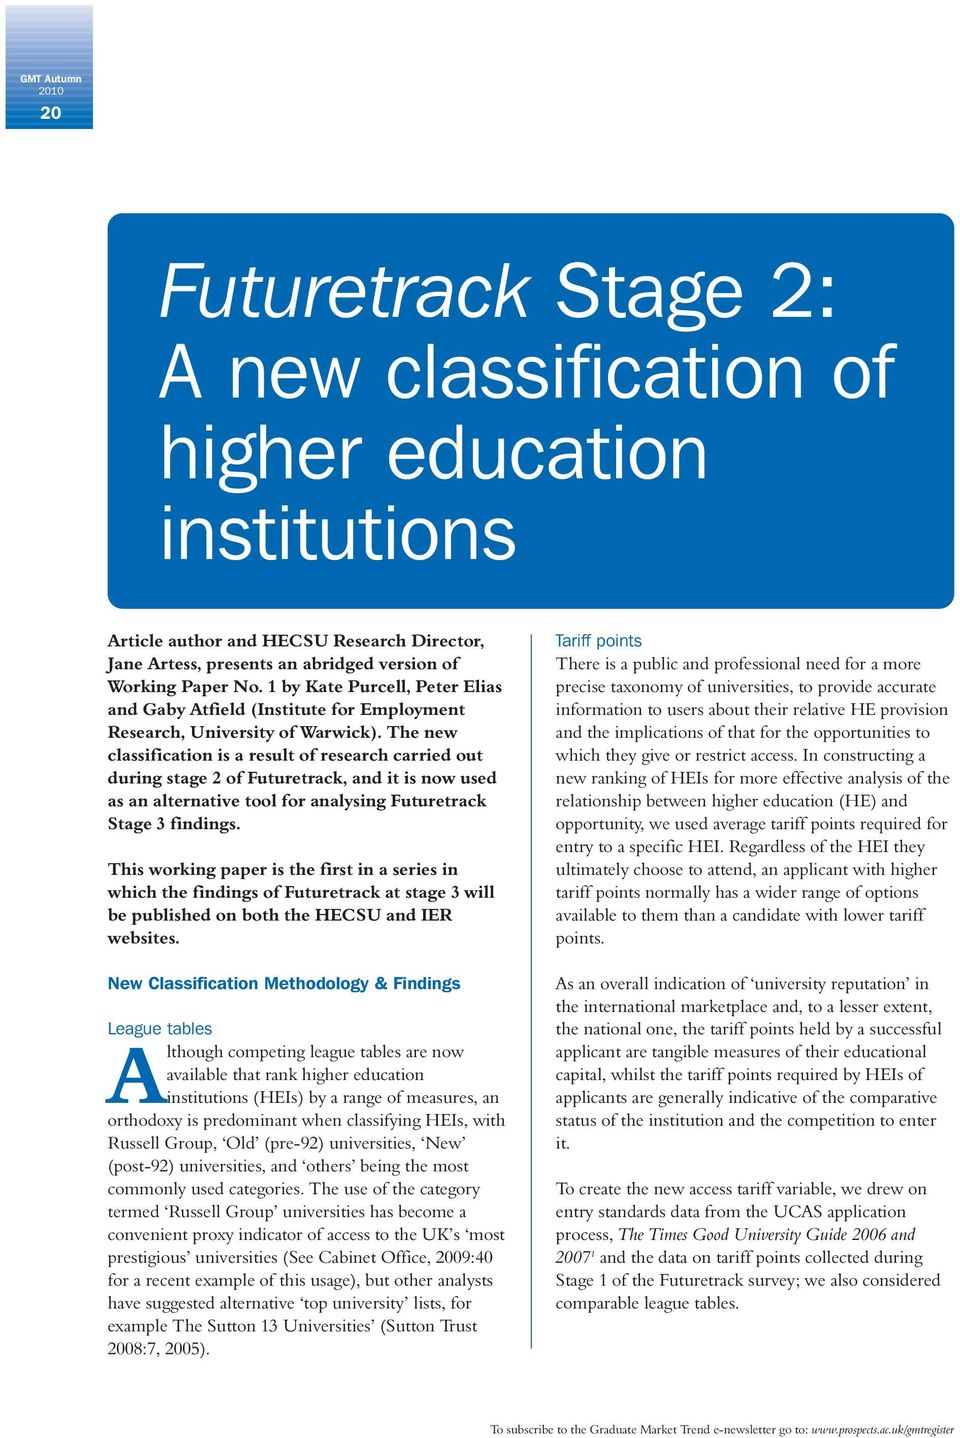 The new classification is a result of research carried out during stage 2 of Futuretrack, and it is now used as an alternative tool for analysing Futuretrack Stage 3 findings.